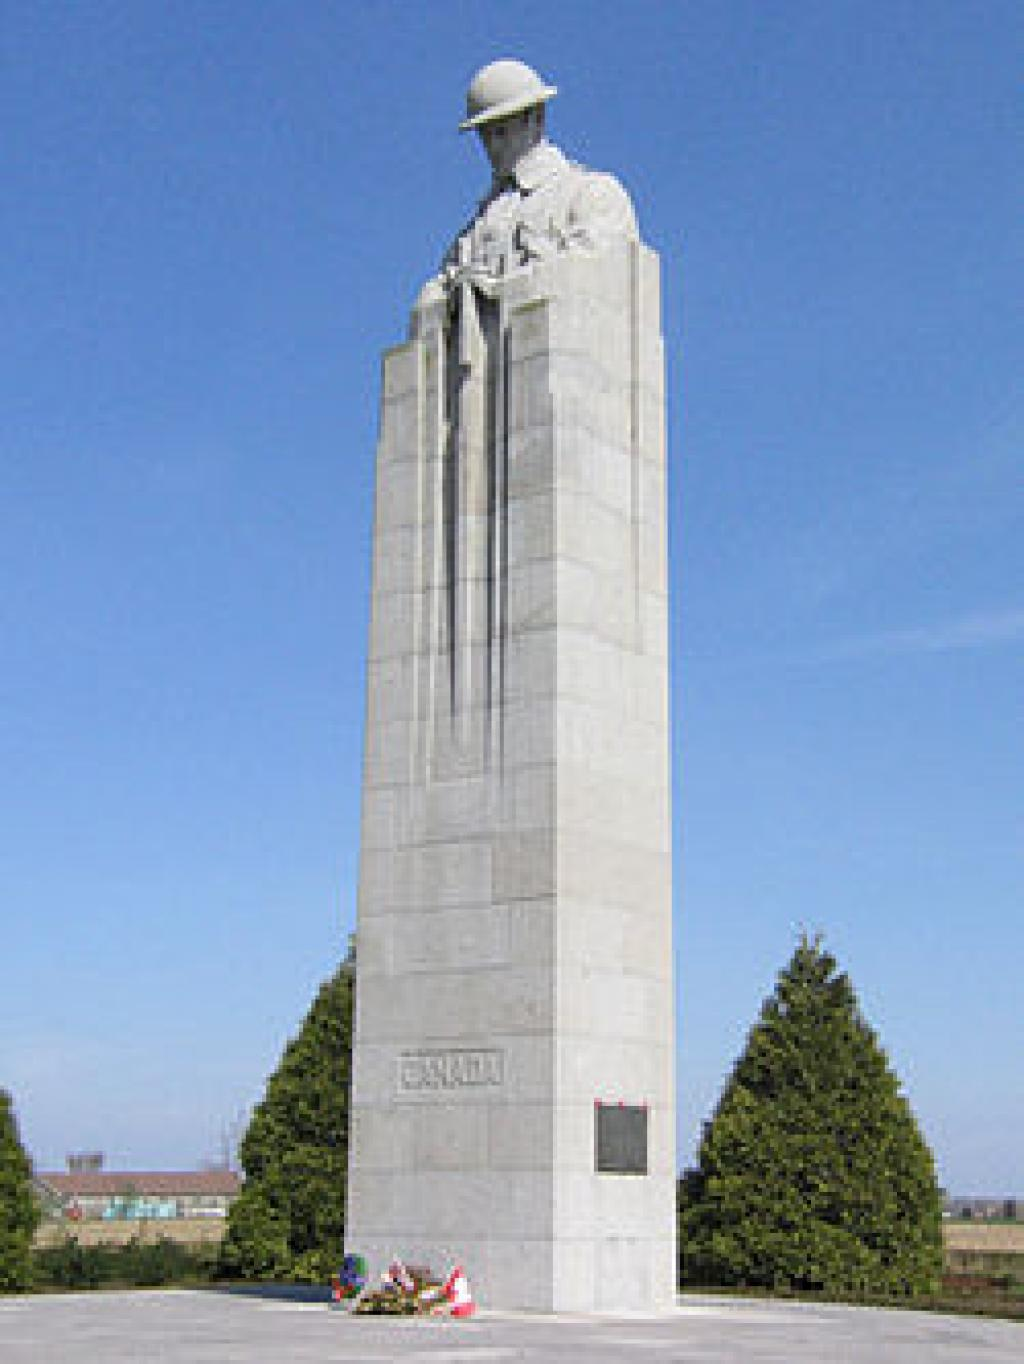 The Brooding Soldier War Memorial at St Julien